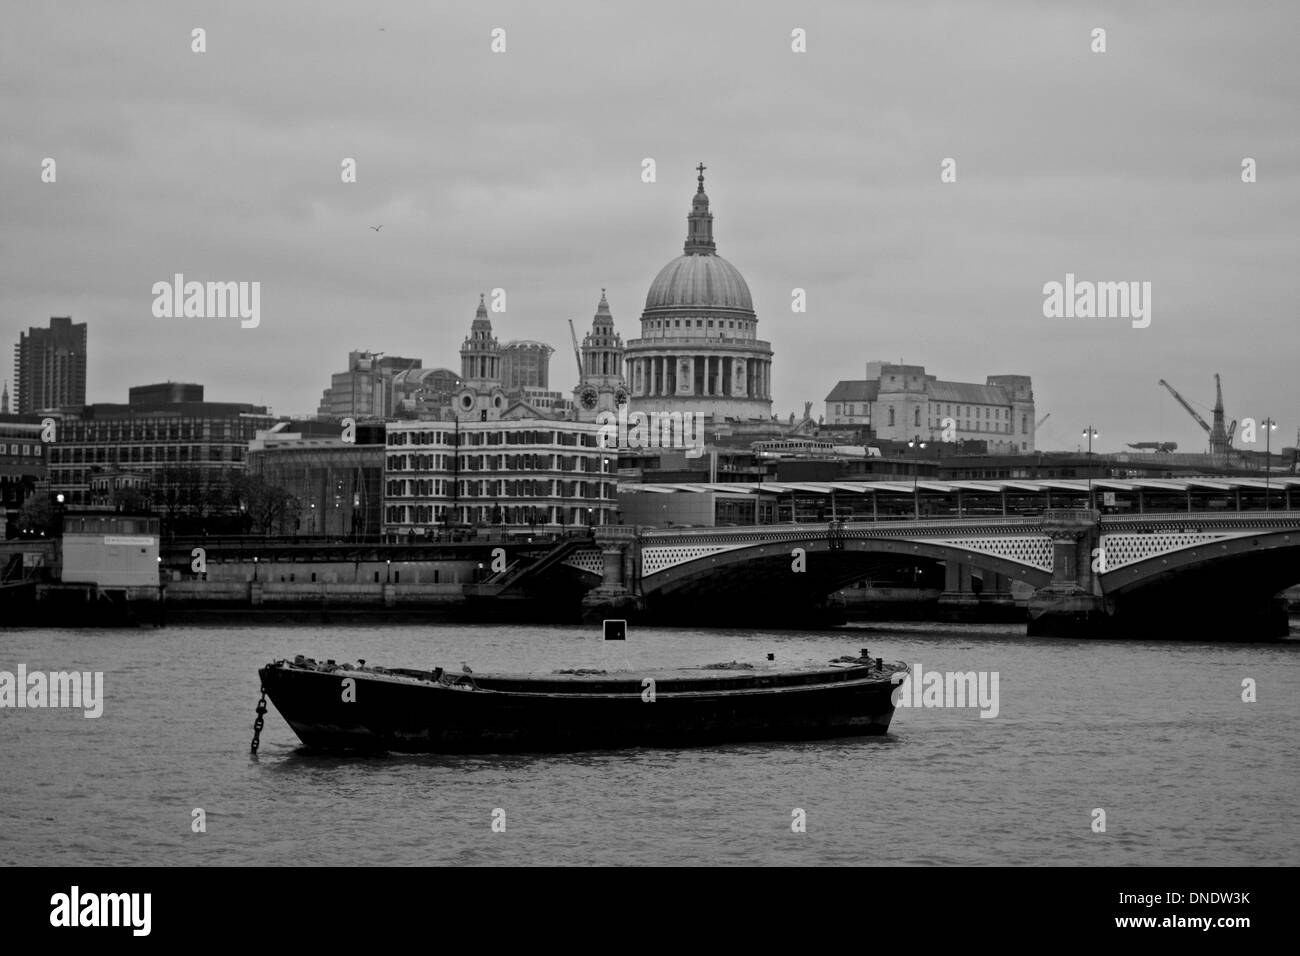 GB LONDON ST PAULS CATHEDRAL RIVER THAMES - Stock Image